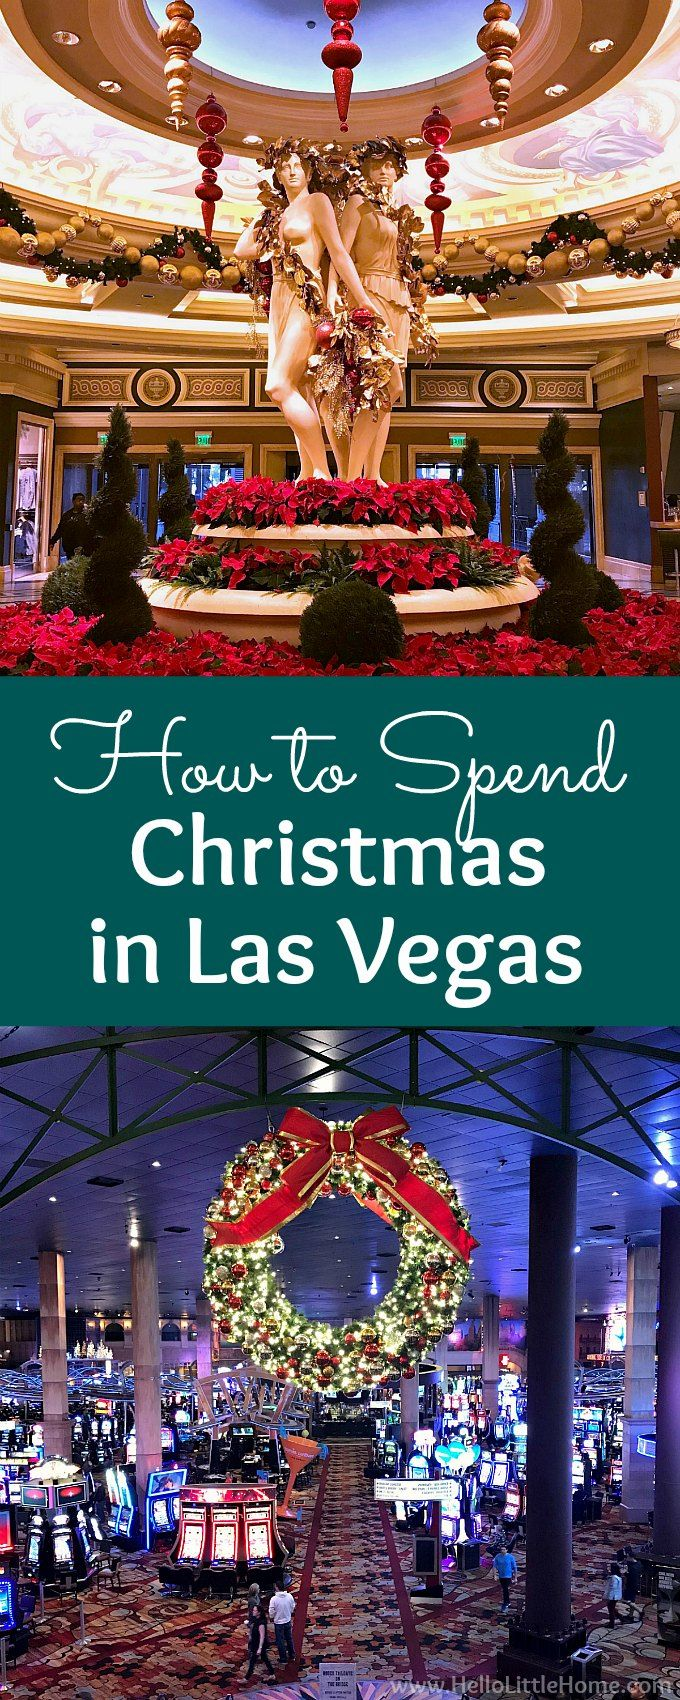 How to Spend Christmas in Las Vegas! Will you be in Las Vegas for the holidays and are wondering what to do? These are the best things to do in Las Vegas at Christmas time, in November or December. Enjoy lots pictures of Las Vegas Christmas decorations from trees to lights at the different casinos on the Las Vegas Strip, plus many Las Vegas tips: how to see it all, where to eat, where to shop, where to stay + more! | Hello Little Home #LasVegas #thingstodoinlasvegas #christmasinlasvegas…